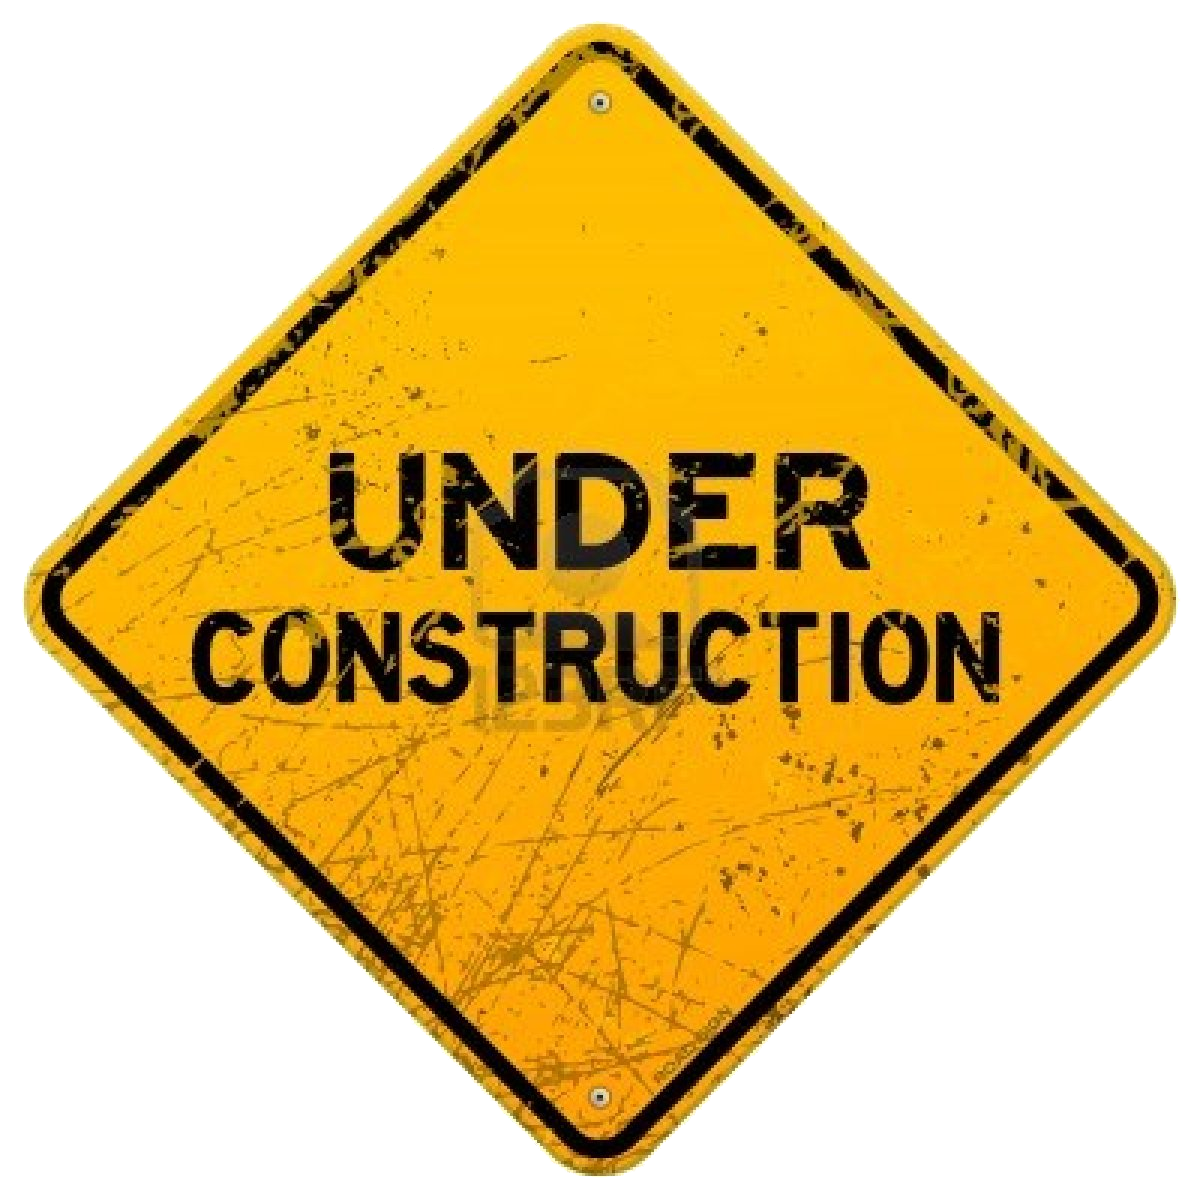 Under Construction Png Hd Free - Reviews, Transparent background PNG HD thumbnail